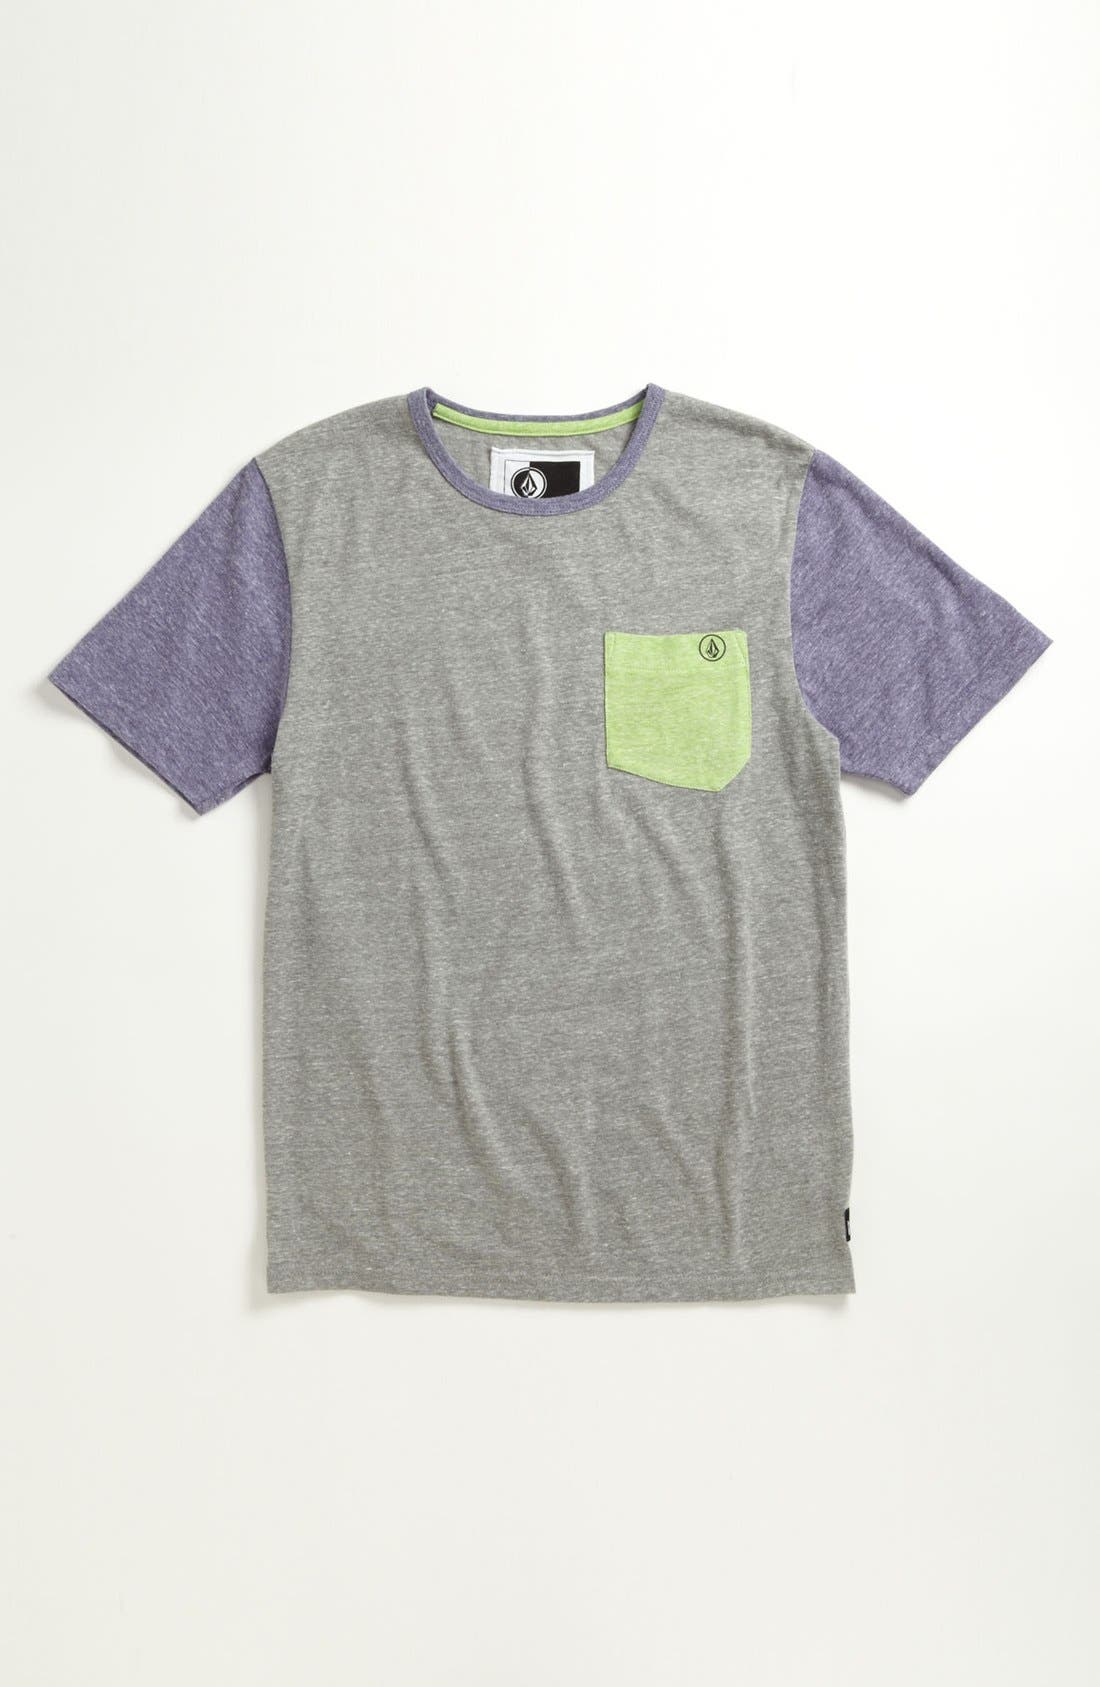 Main Image - Volcom 'Tempest' T-Shirt (Big Boys)